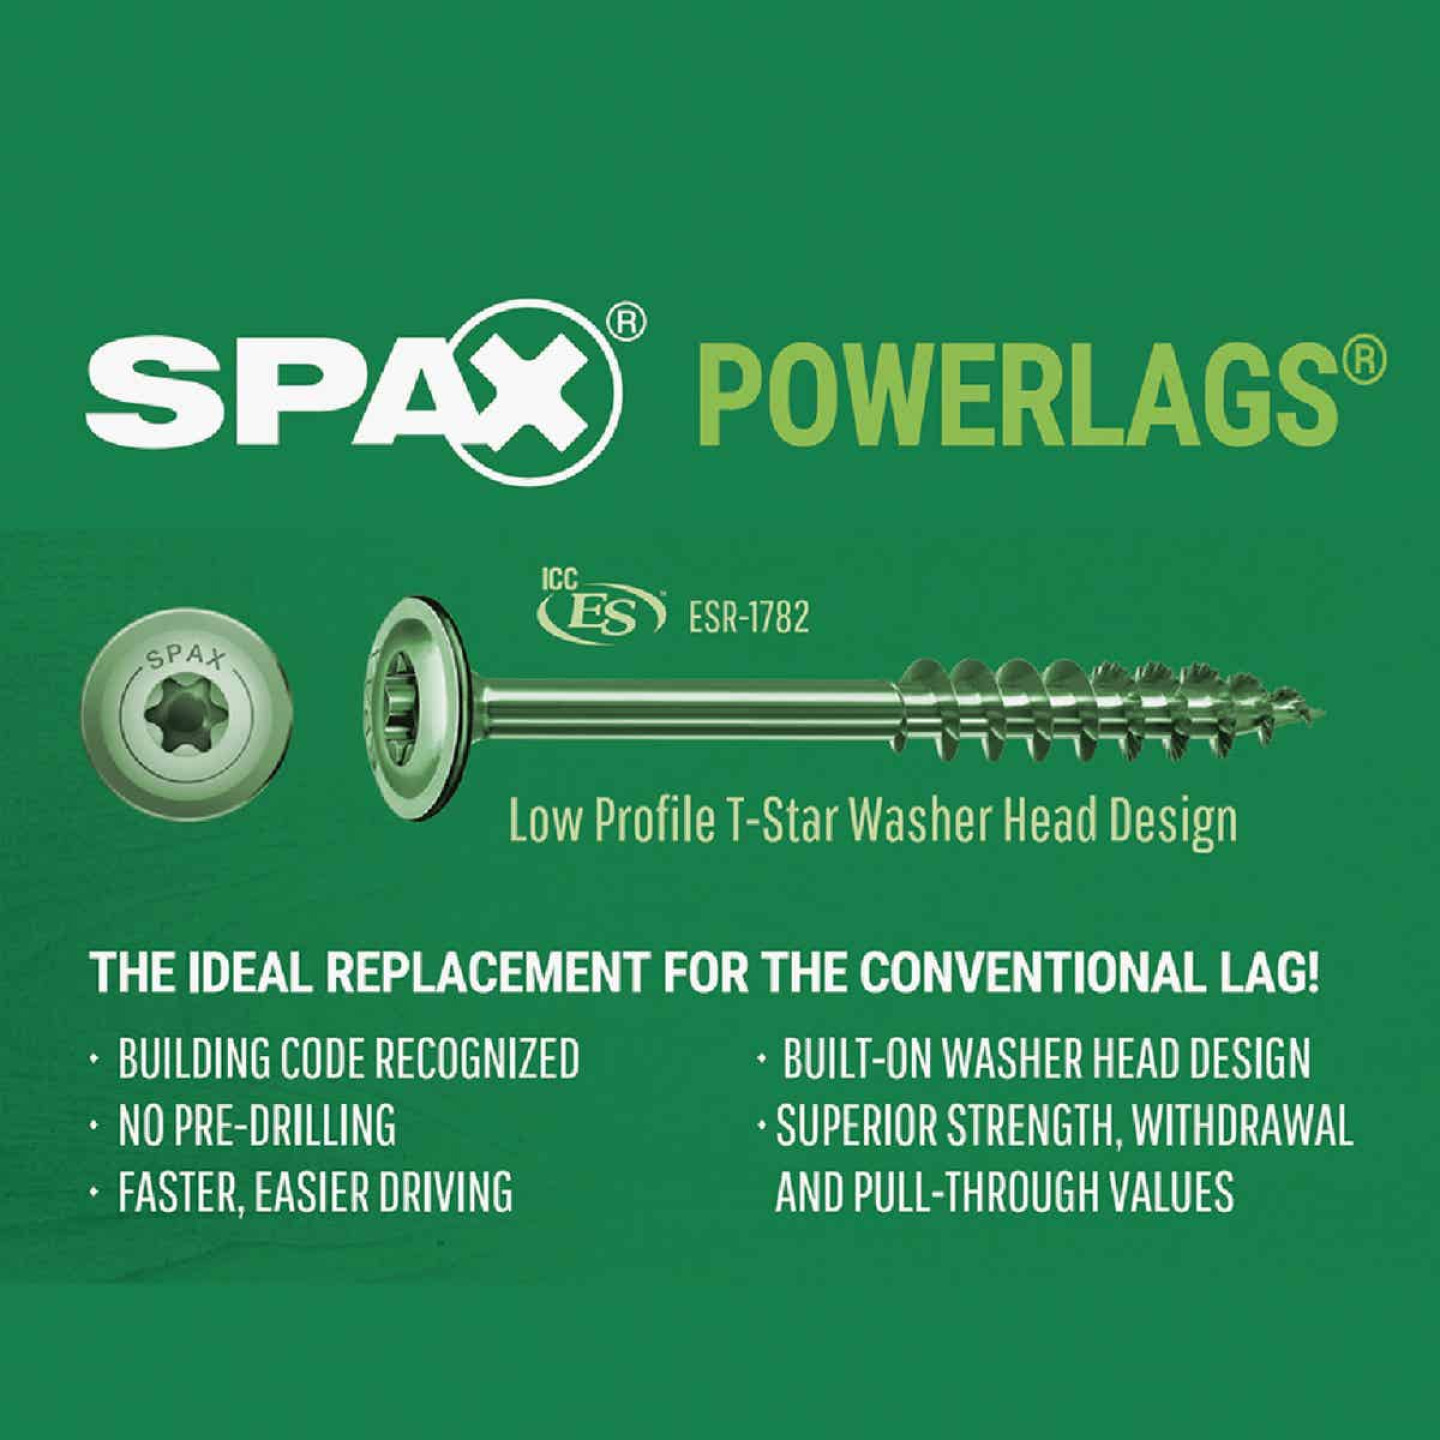 Spax PowerLags 5/16 In. x 8 In. Washer Head Exterior Structure Screw (12 Ct.) Image 4